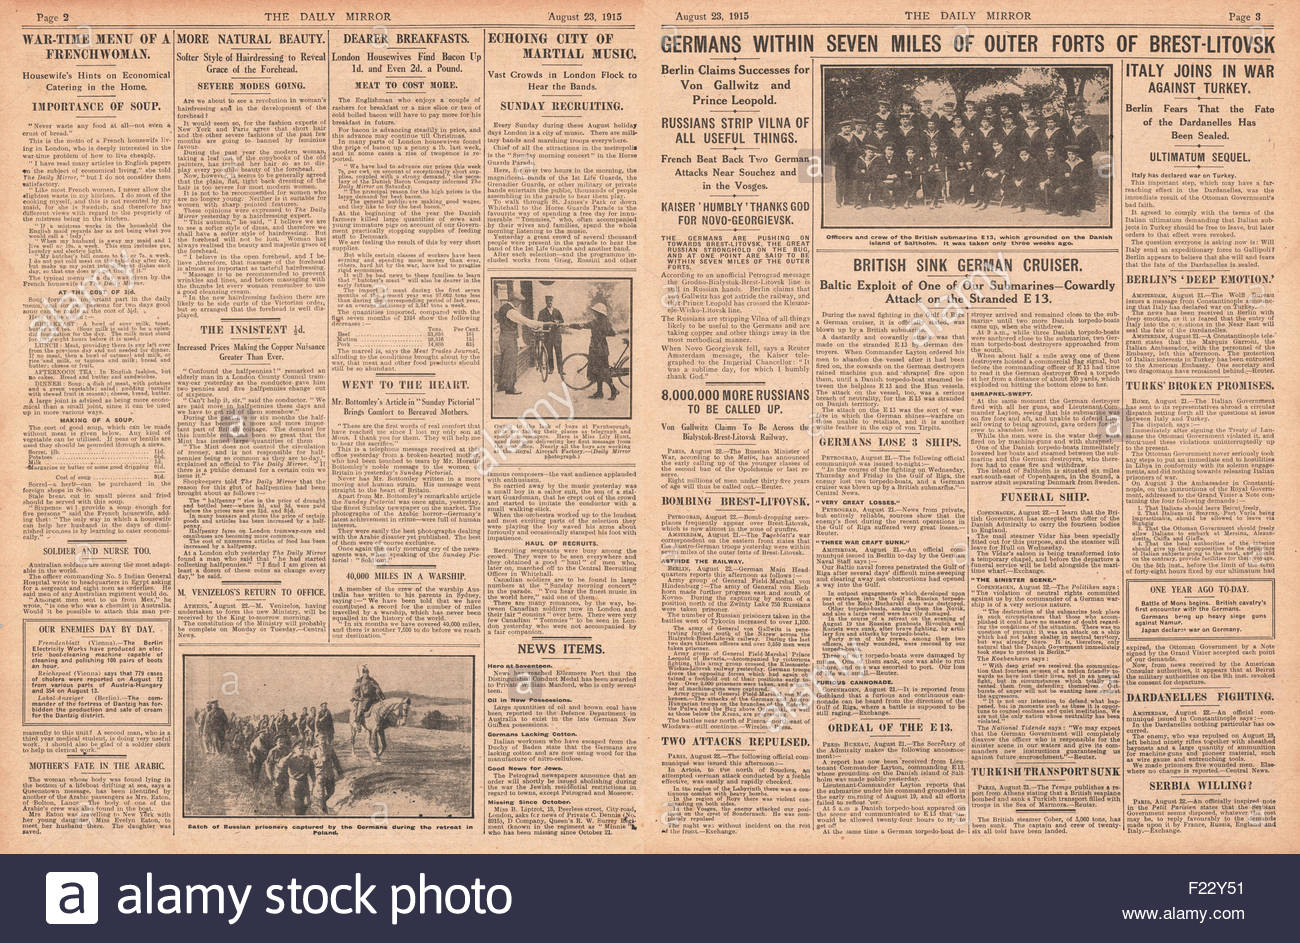 1915 pages 2 and 3 Daily Mirror German Army advance on Brest-Litovsk, Italy declare War on Turkey and Battle of - Stock Image